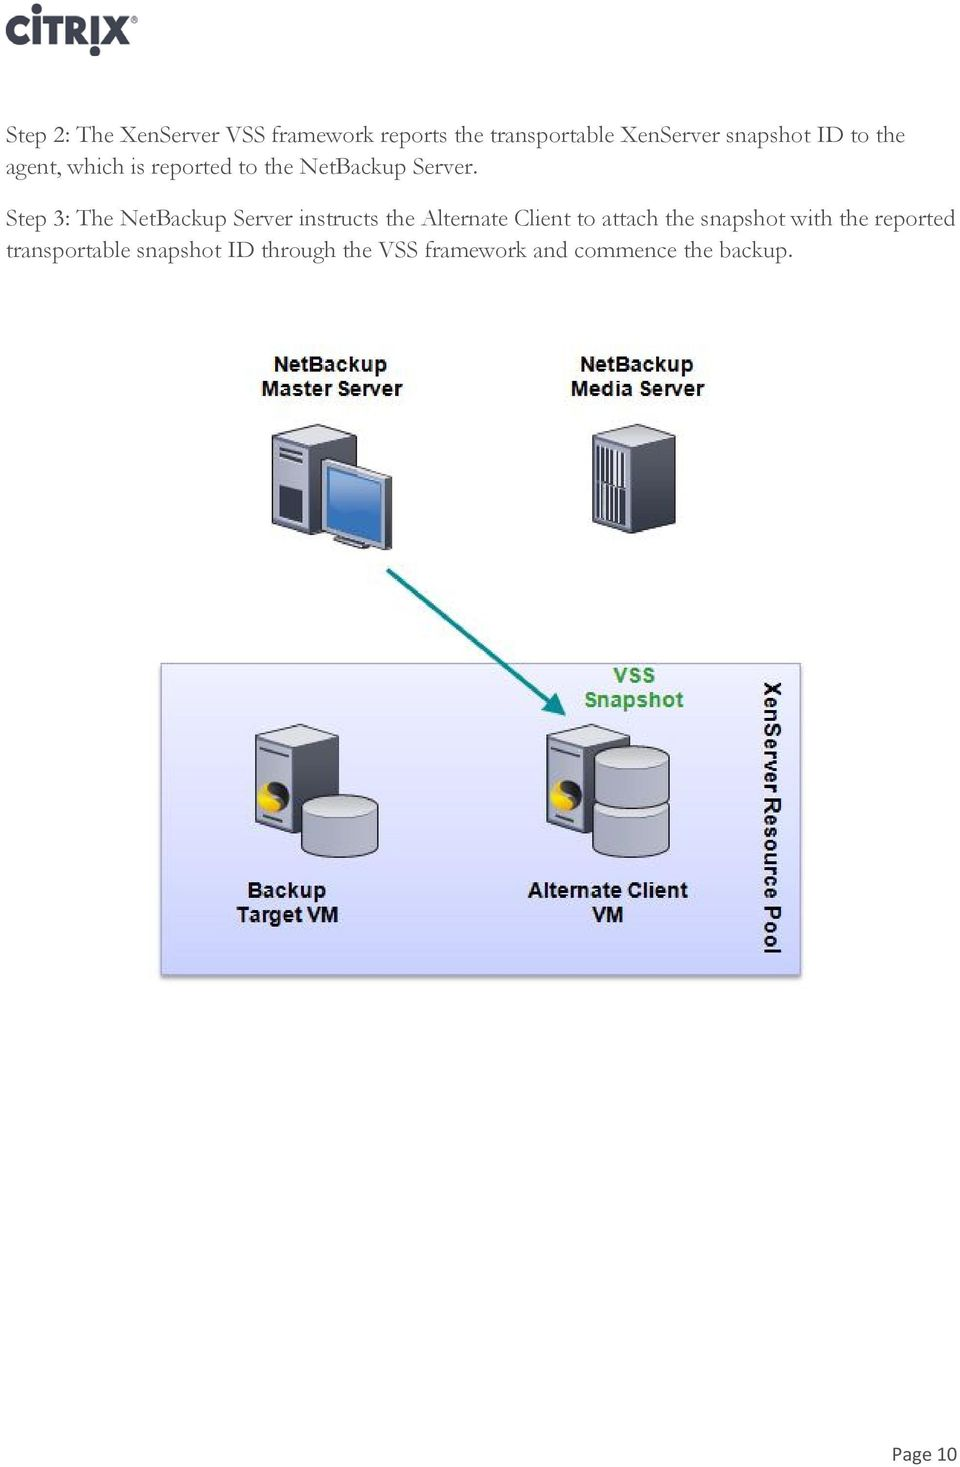 Step 3: The NetBackup Server instructs the Alternate Client to attach the